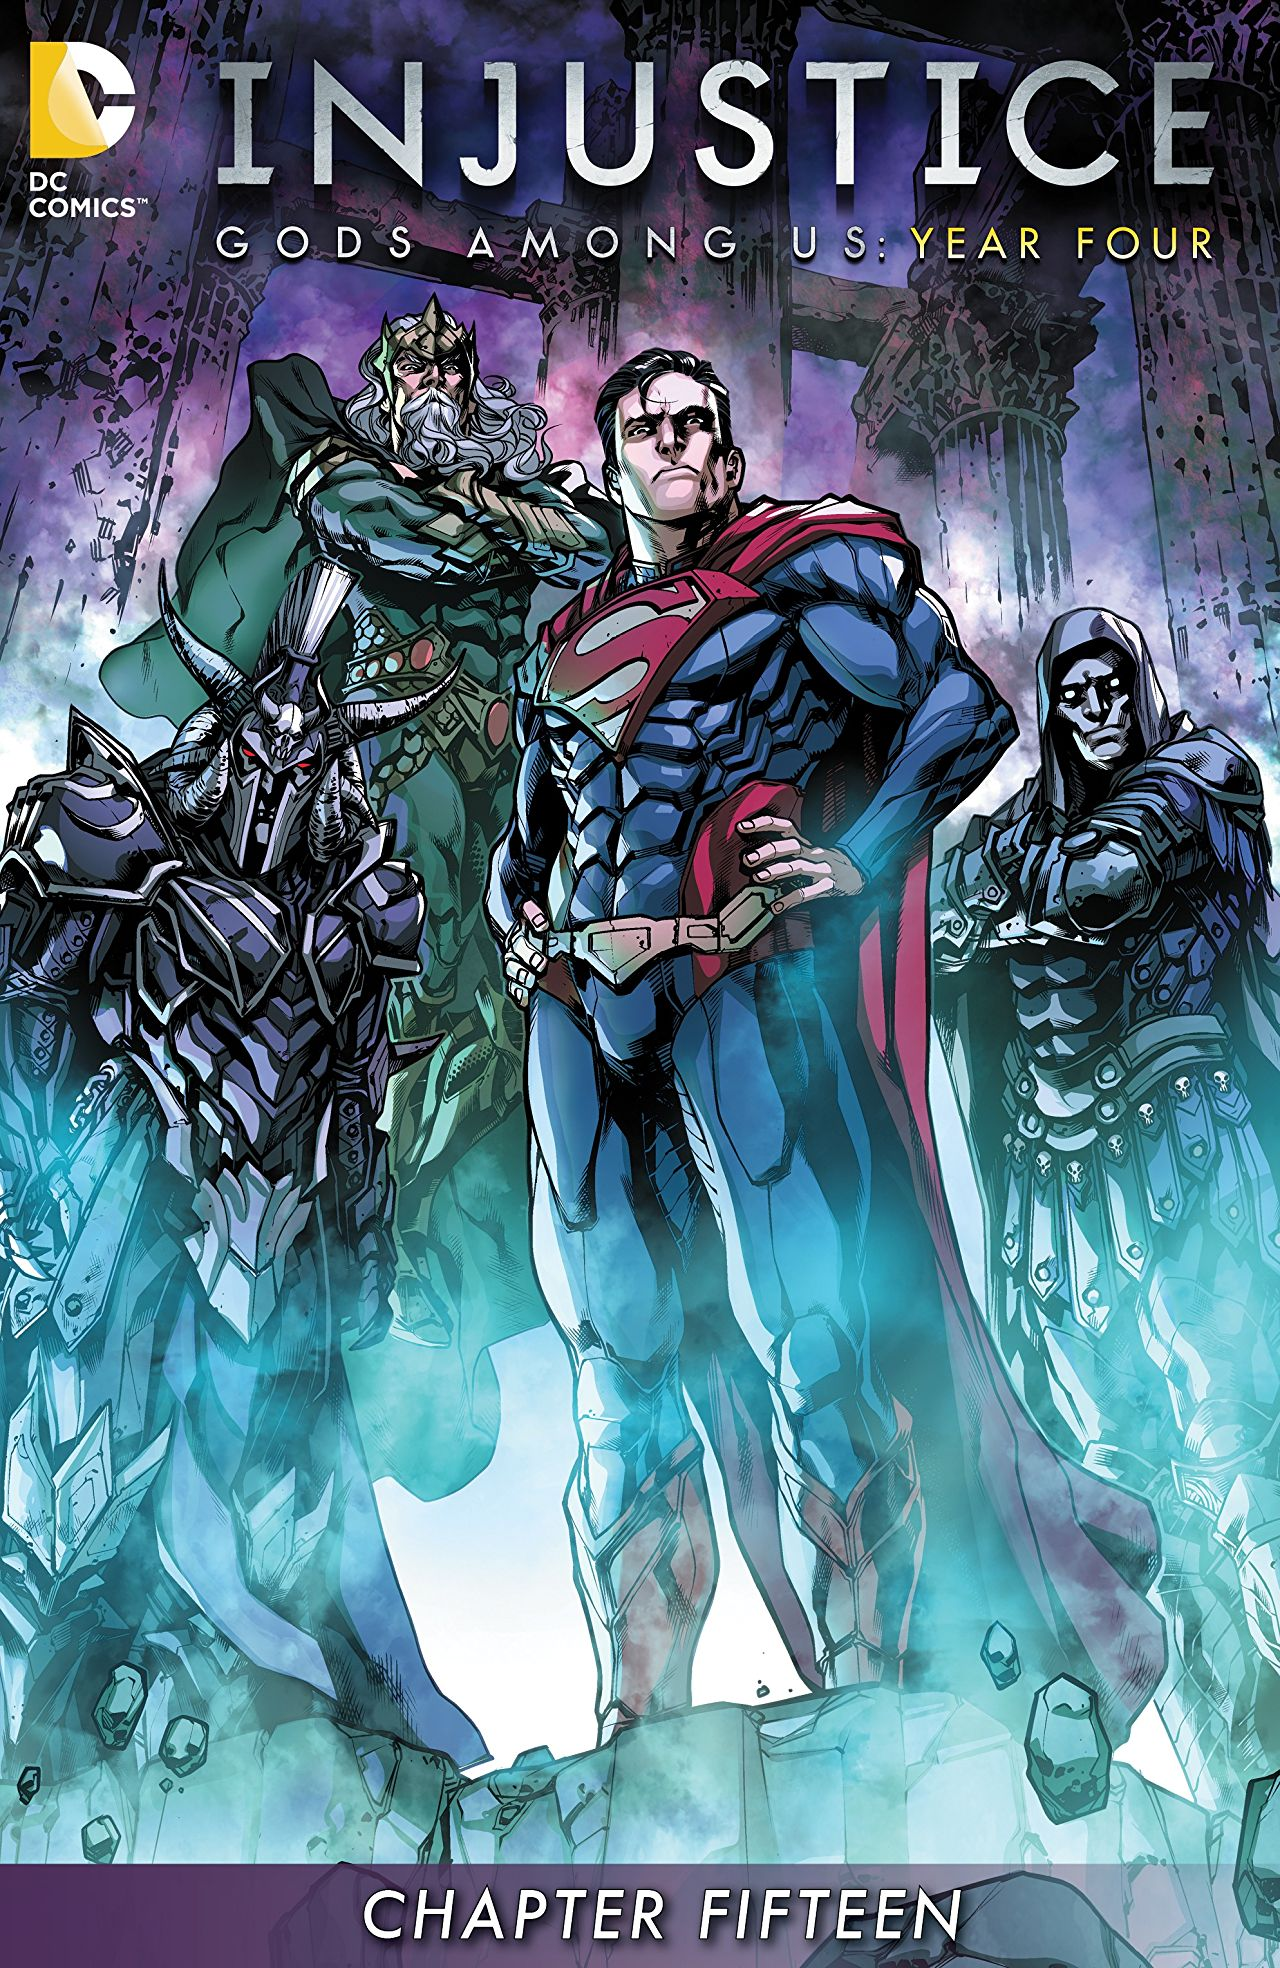 Injustice: Gods Among Us: Year Four Vol 1 15 (Digital)